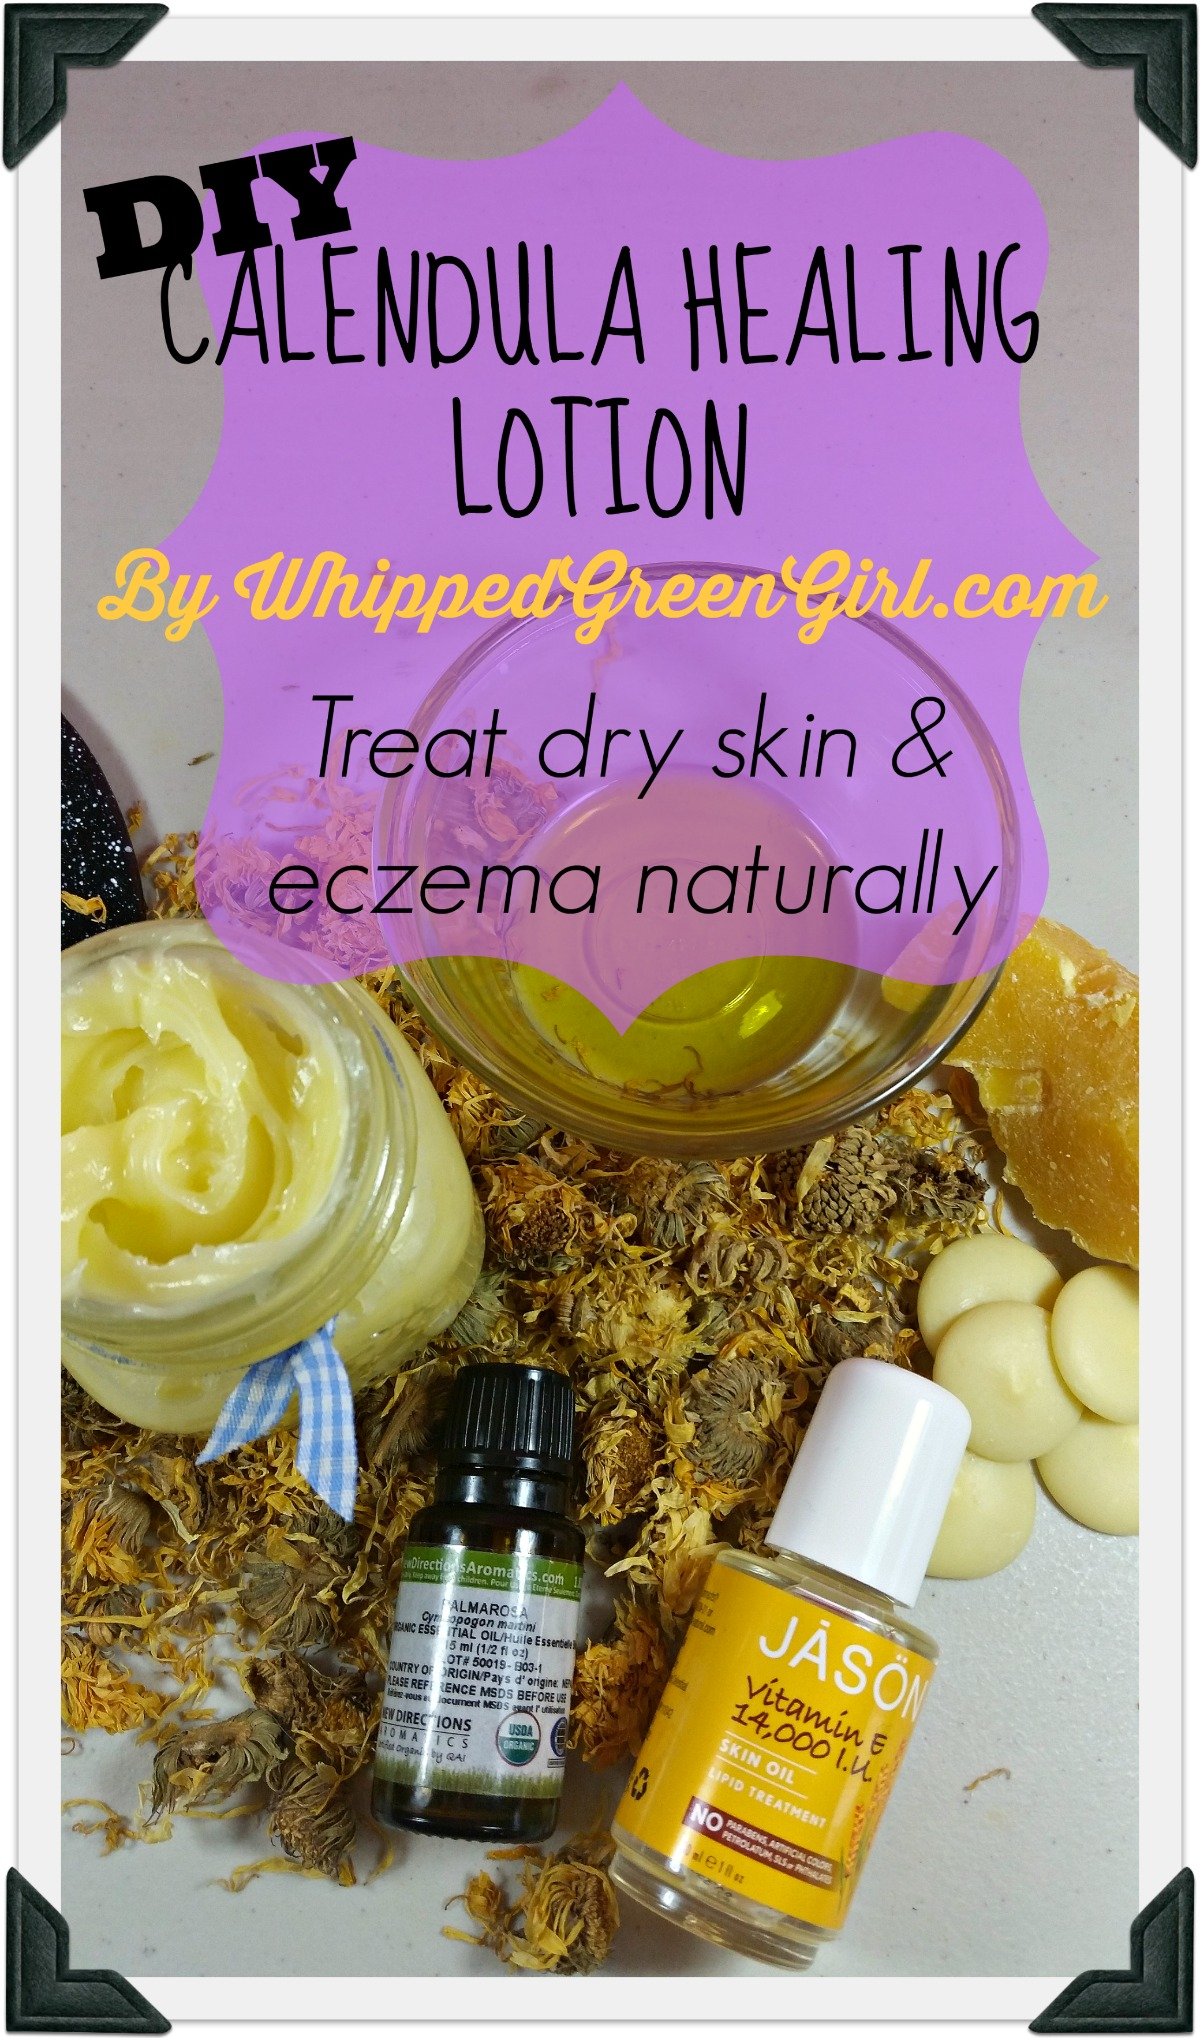 #DIY #Calendula Healing Lotion #recipe by WhippedGreenGirl.com (great for dry skin, eczema)